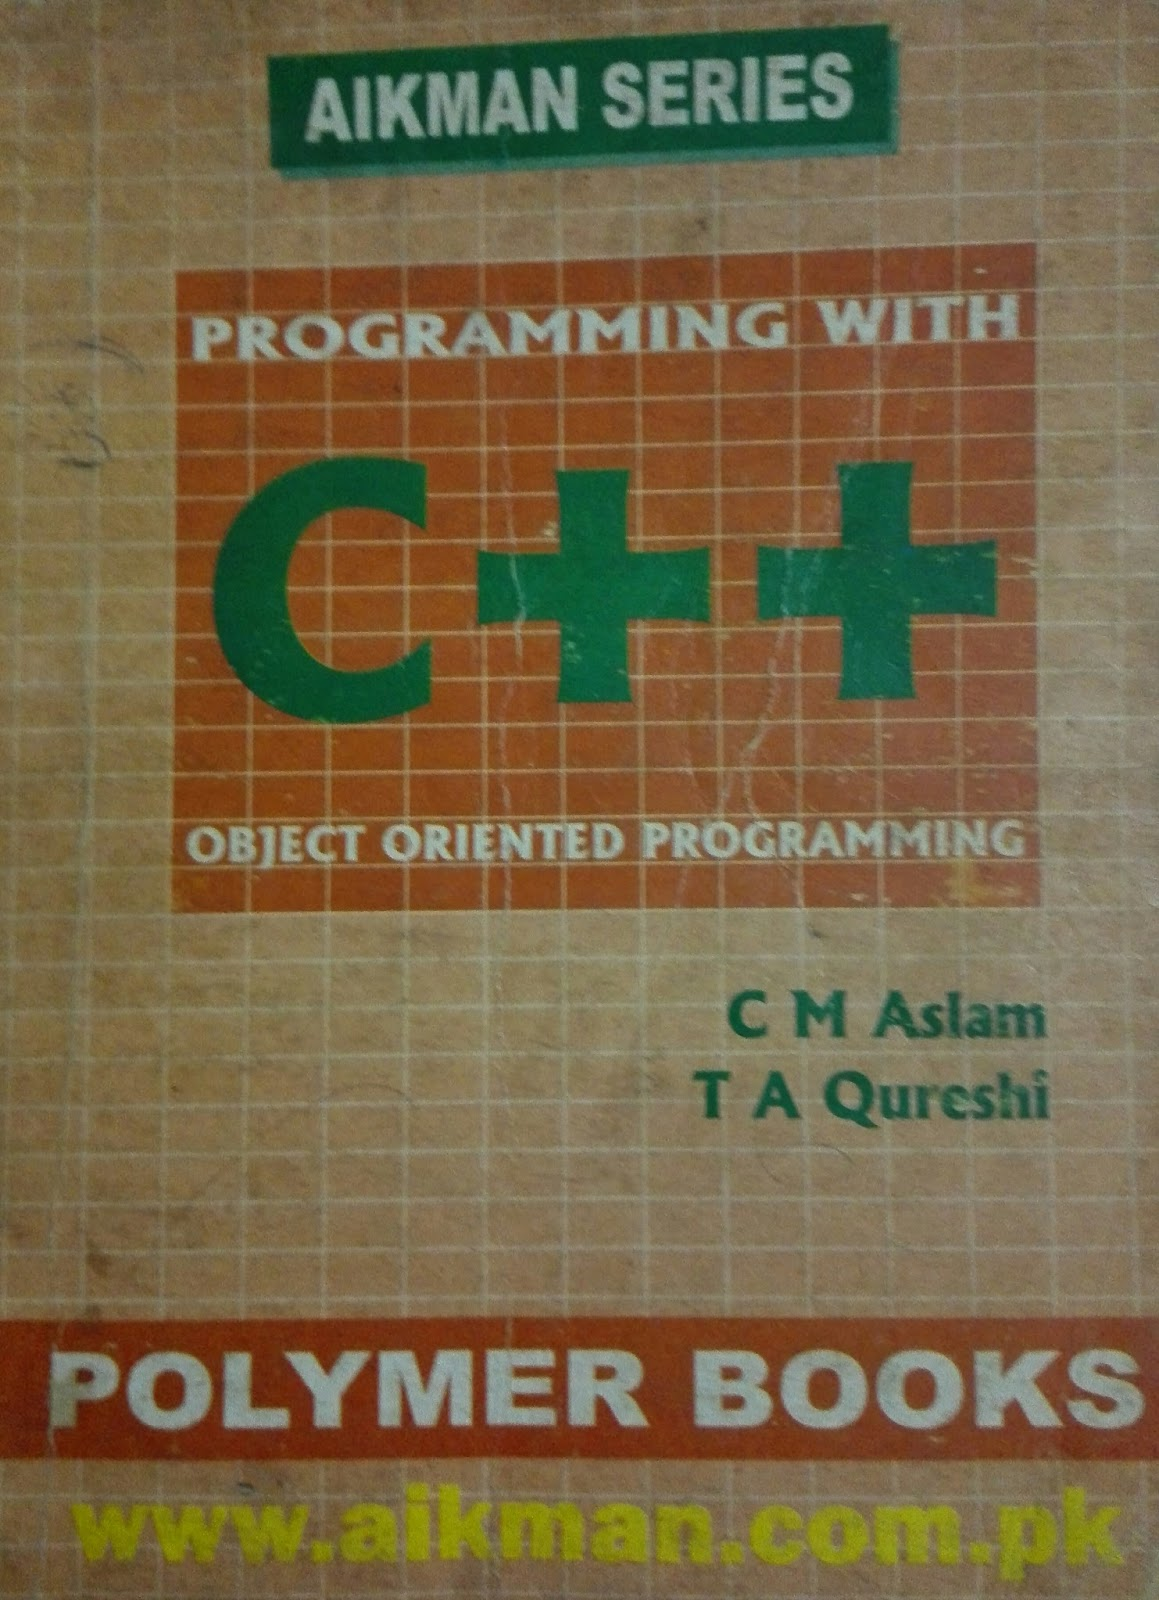 AIKMAN Series Solutions for C++ Programming